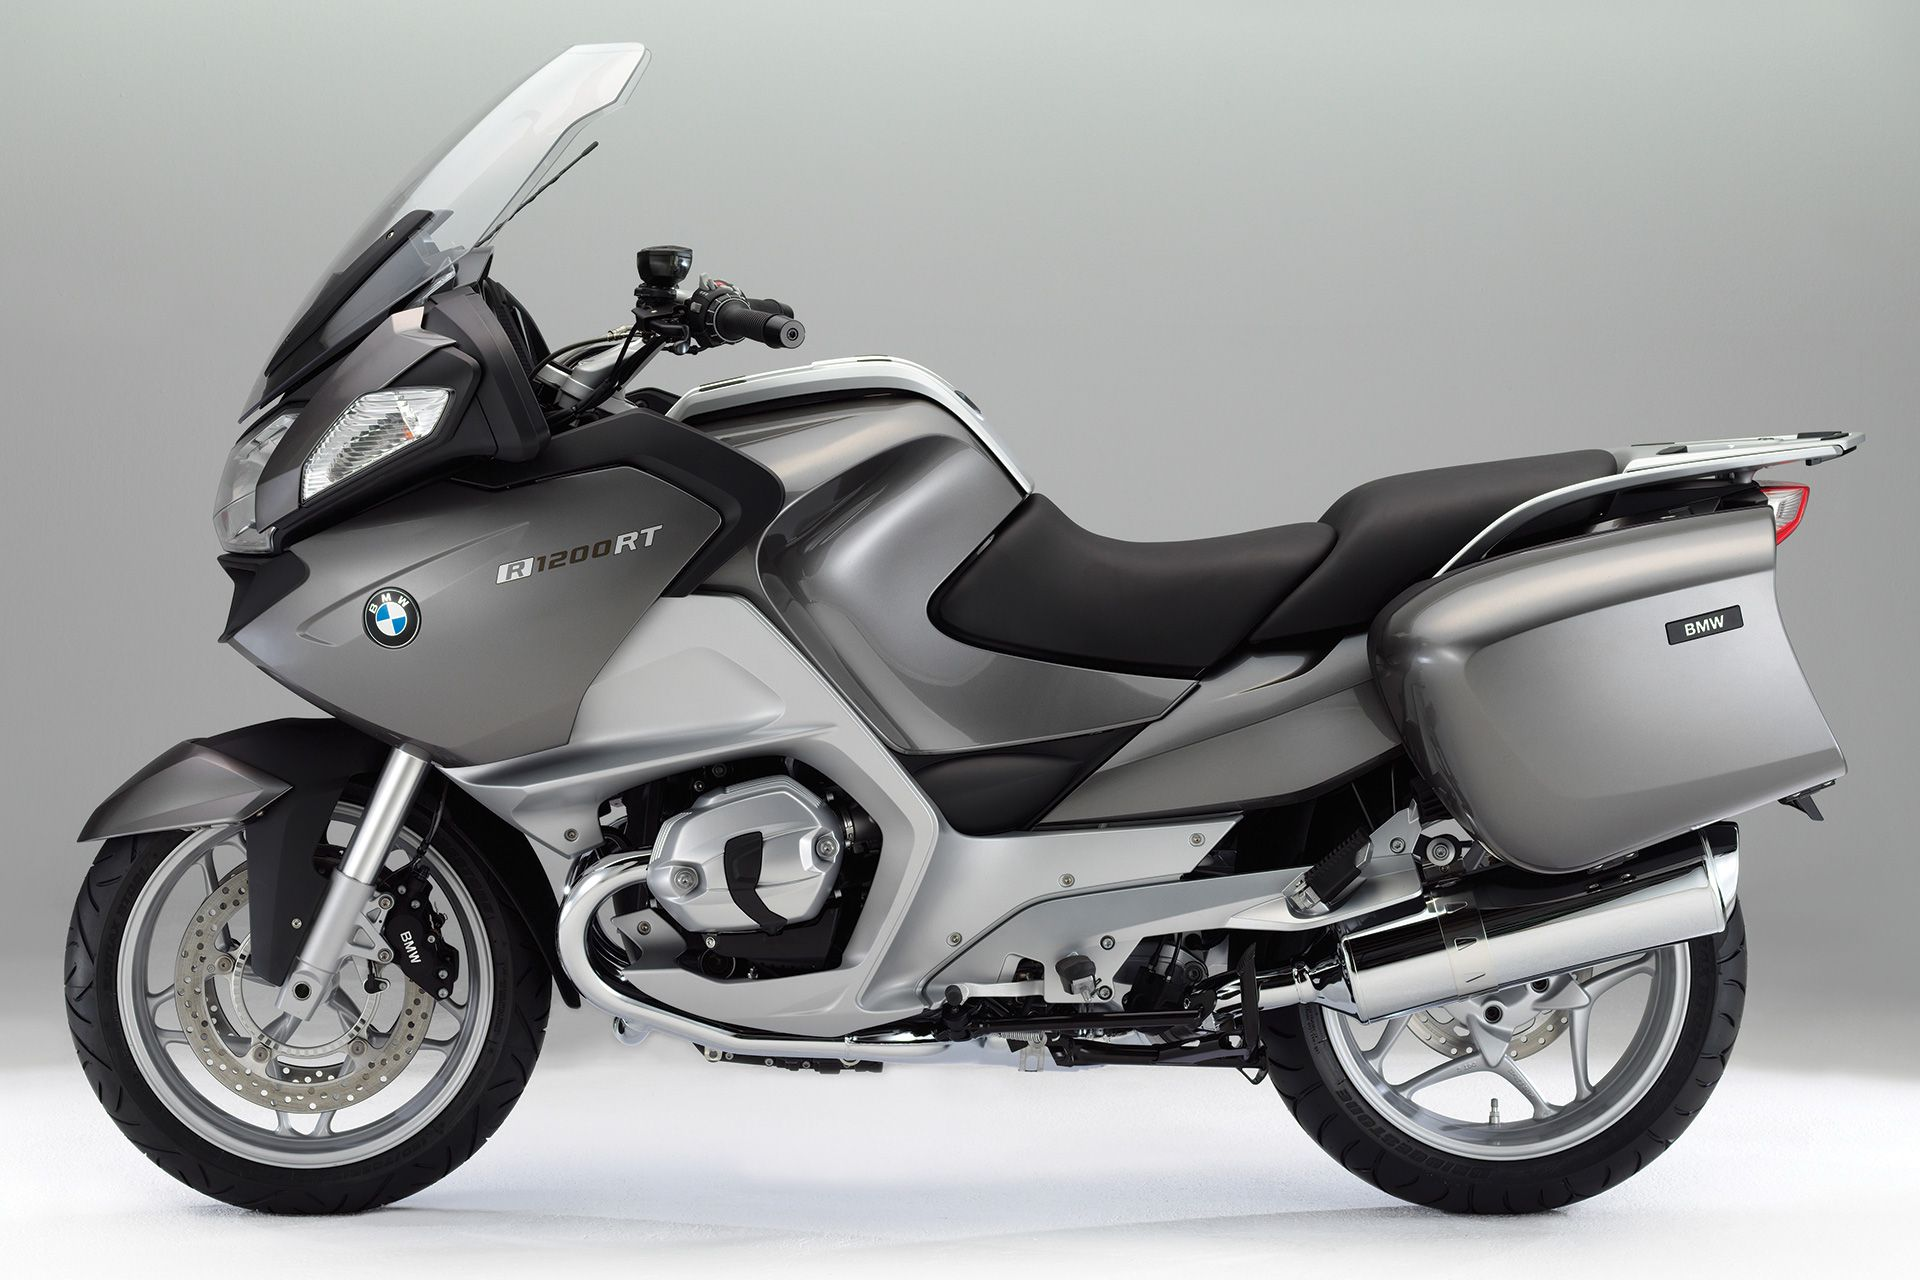 Bmw R1200rt Touring Bikes Best Used Motorcycles Cycle World